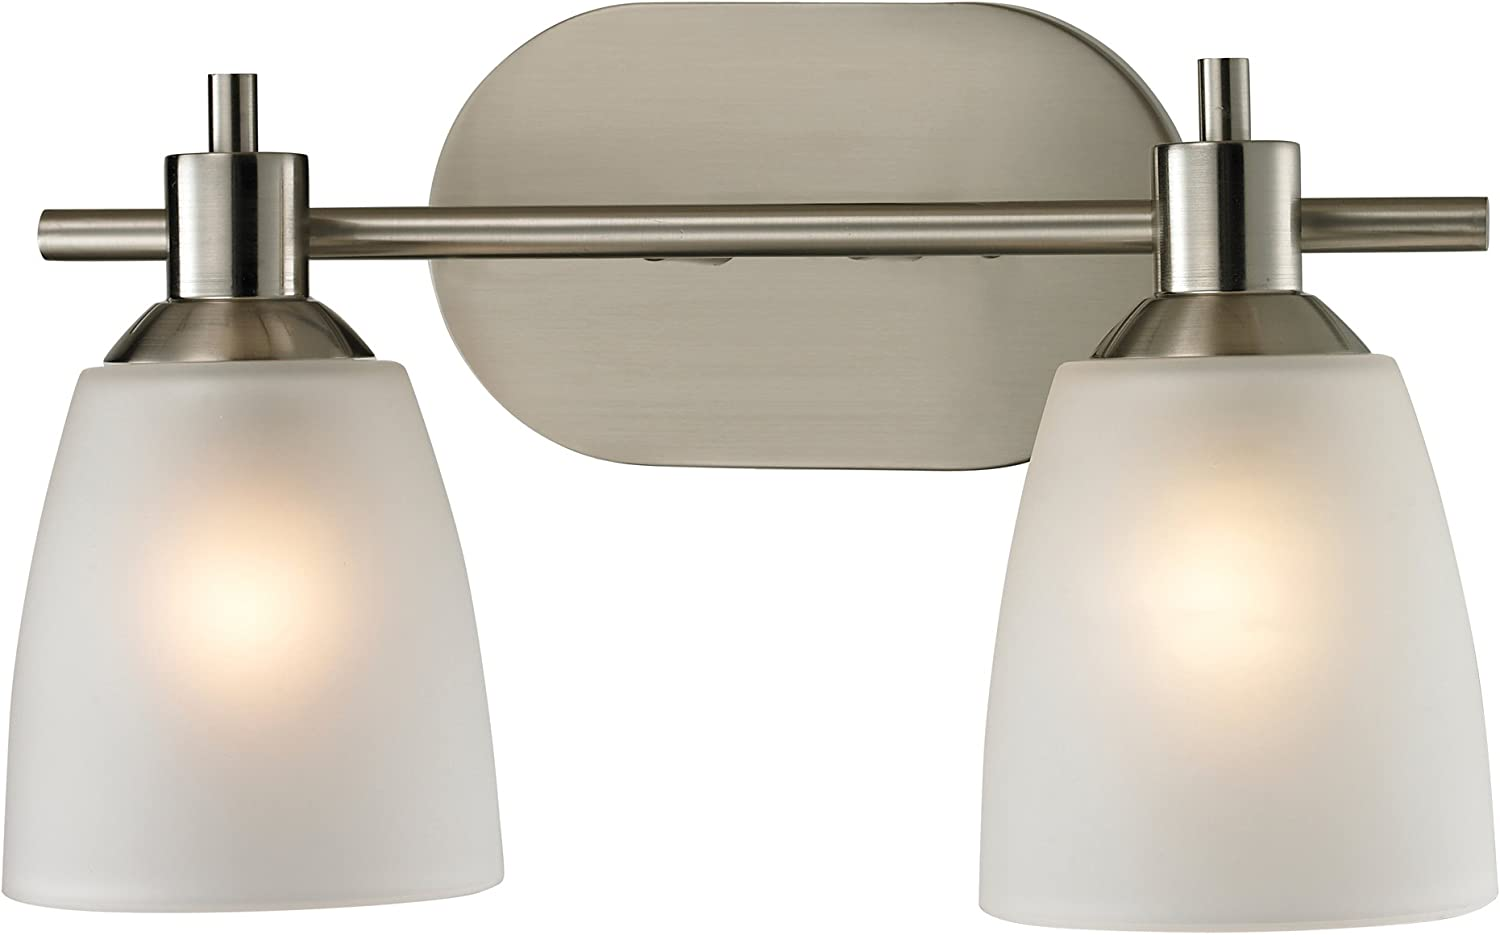 Cornerstone Lighting 1302BB 20 Jackson 2 Light Bath Bar, Brushed Nickel